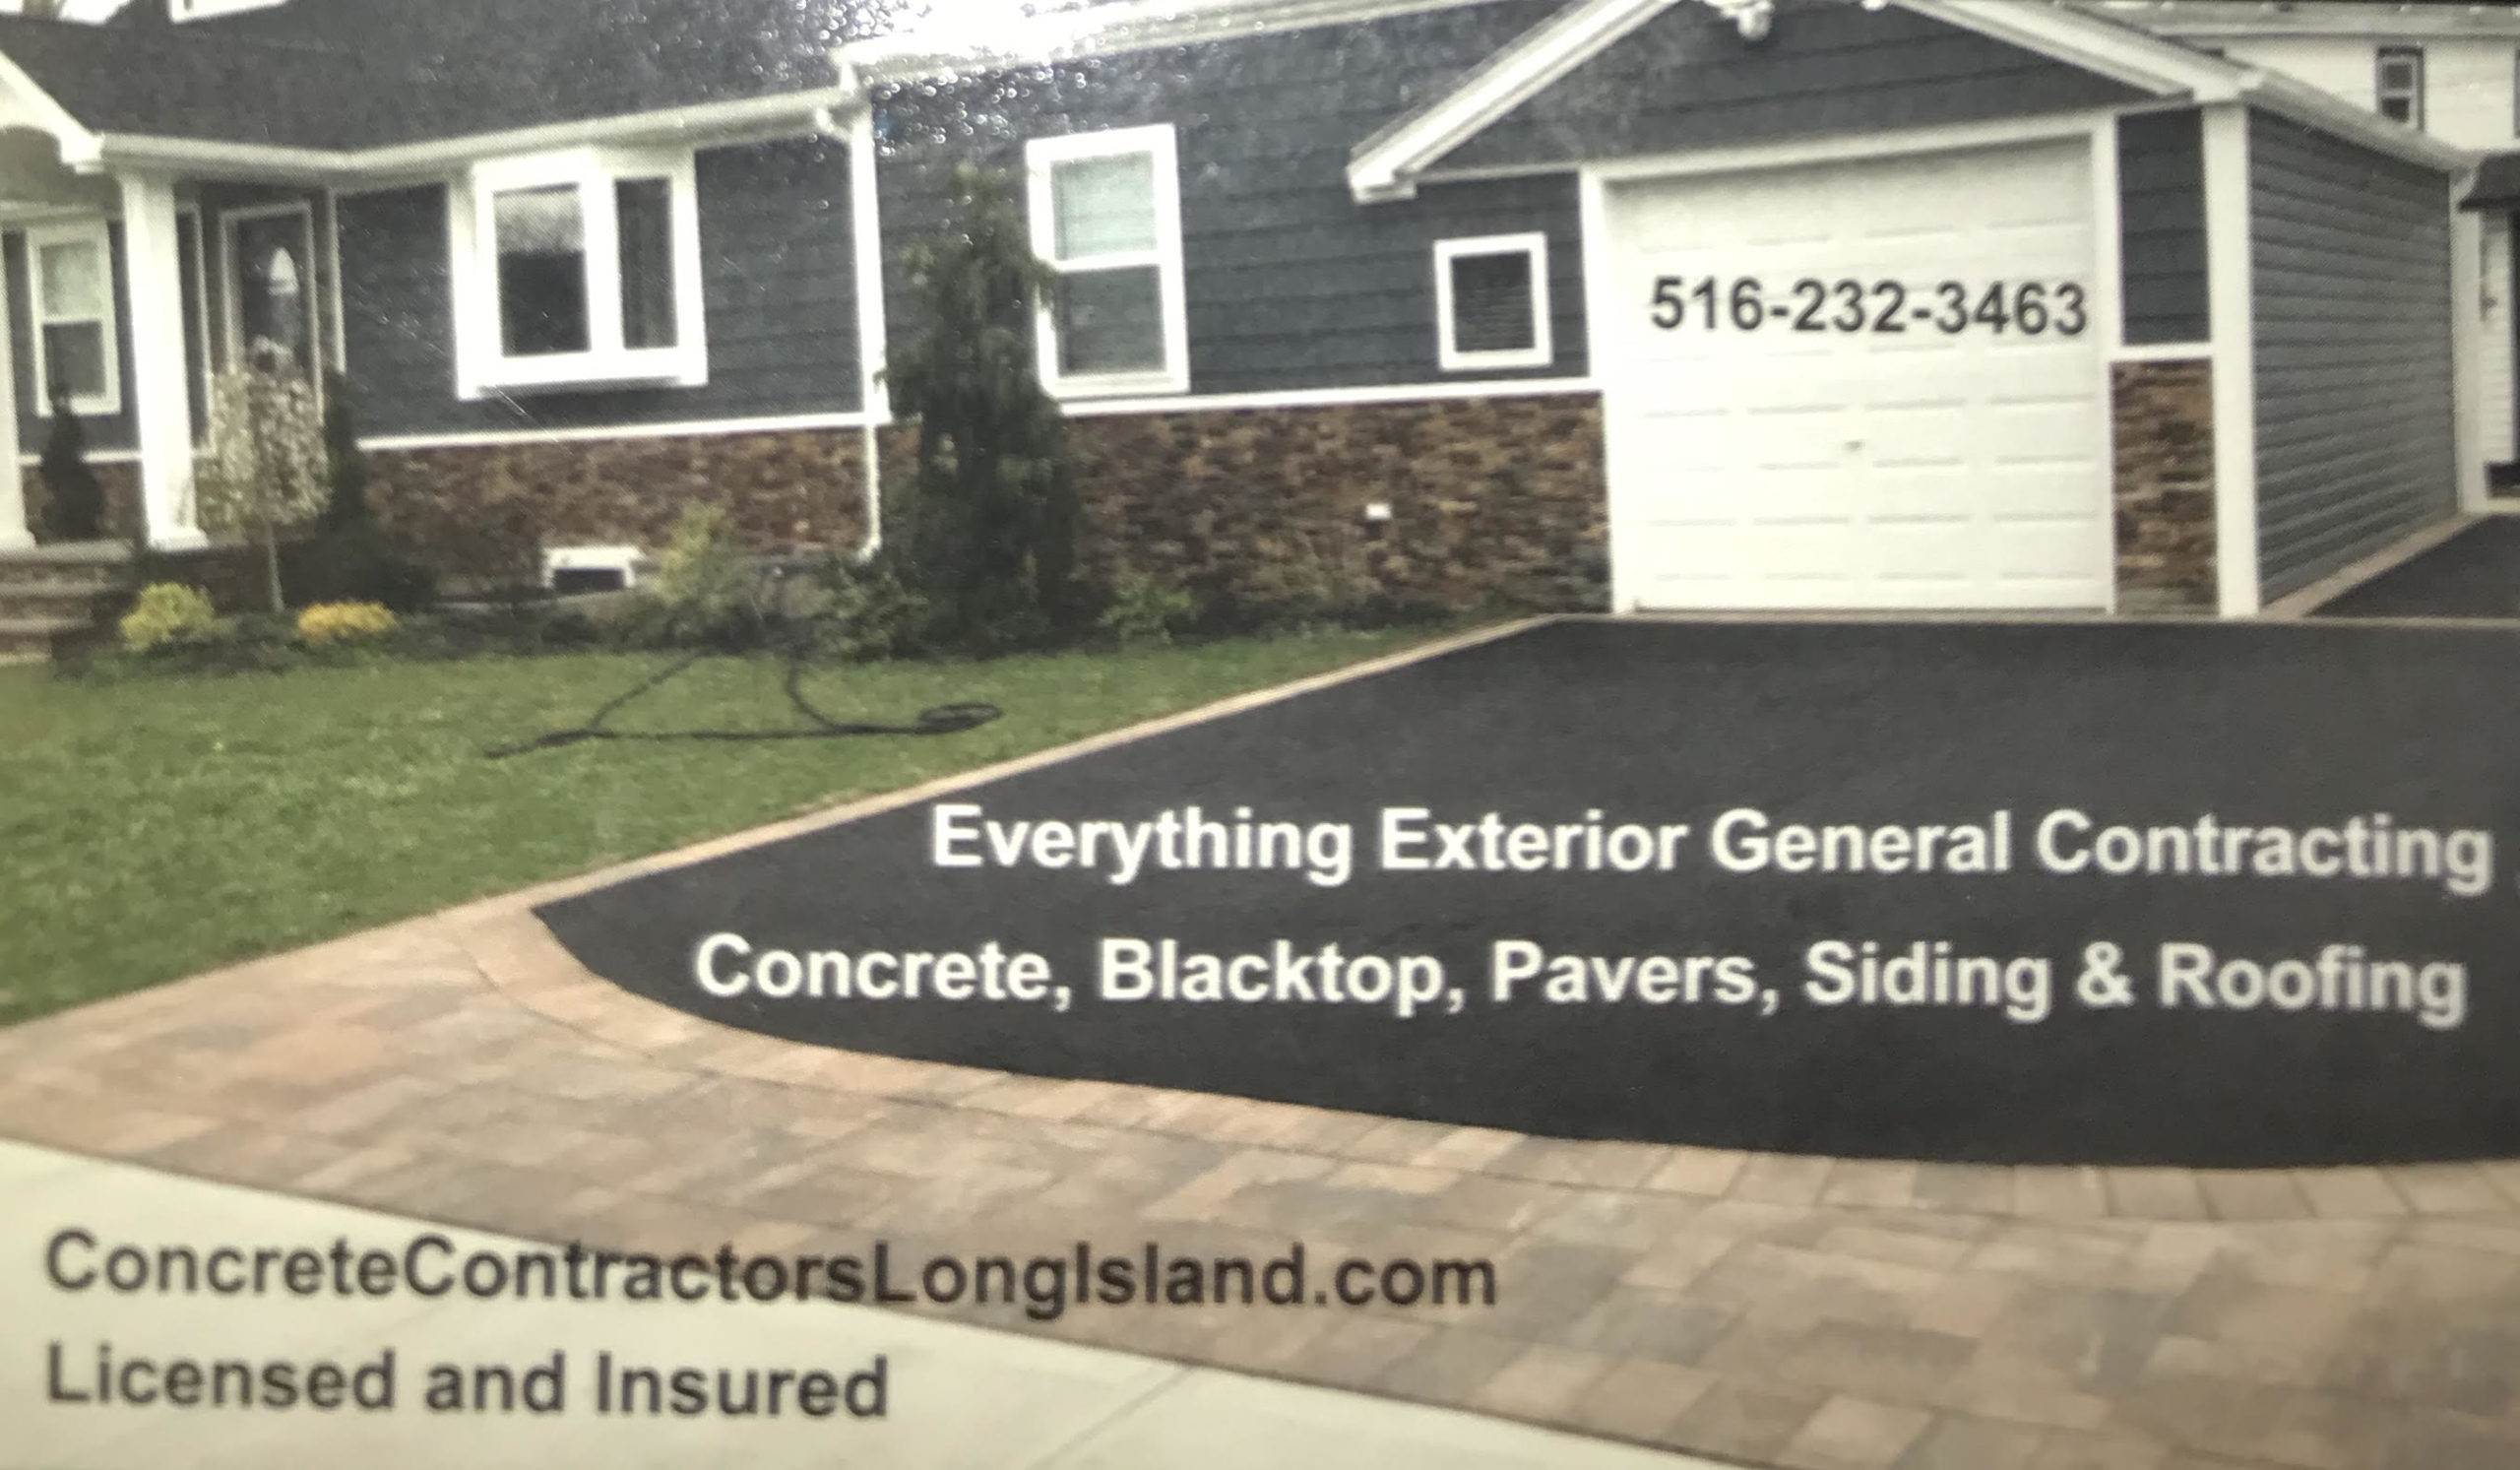 Concrete Contractors Long Island